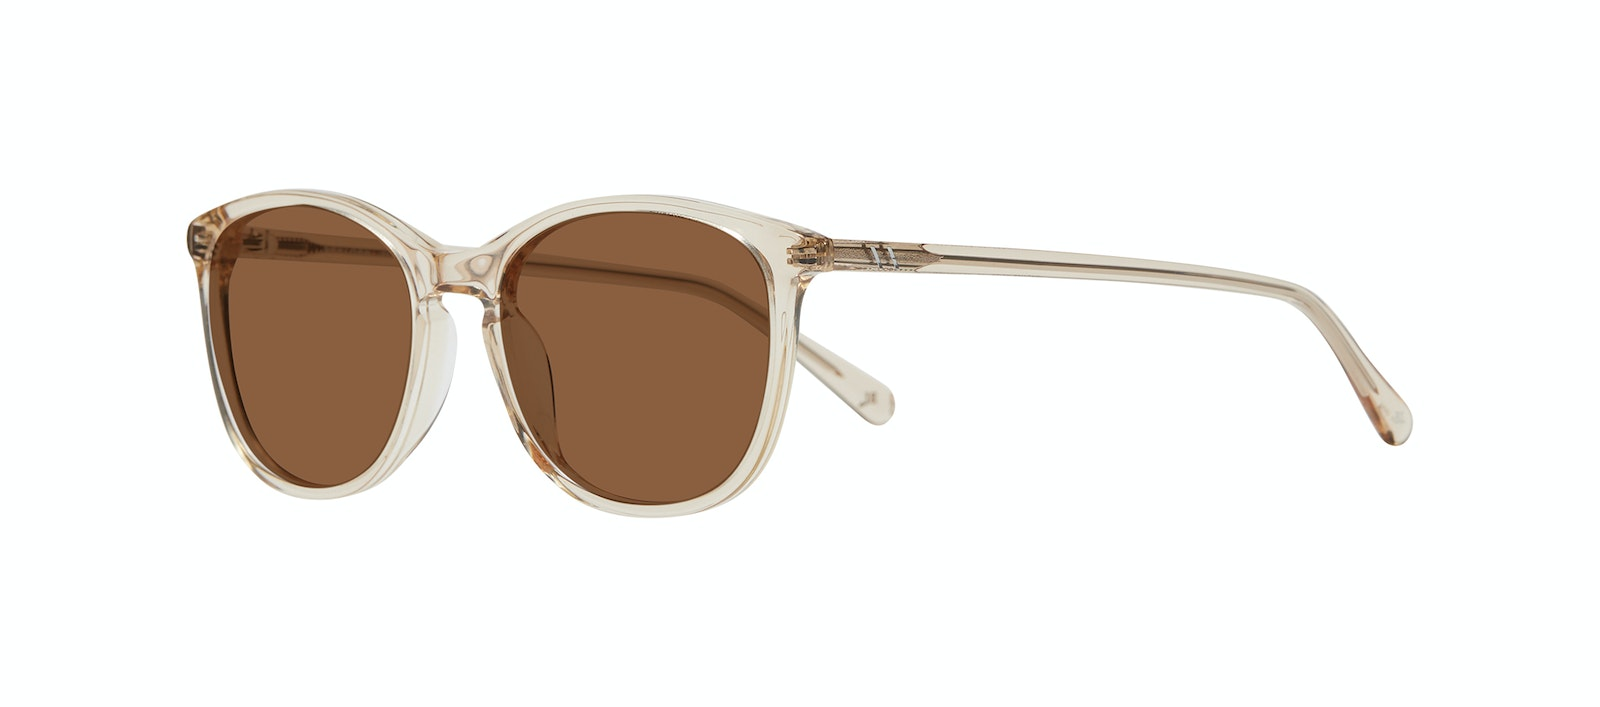 Affordable Fashion Glasses Rectangle Square Round Sunglasses Women Nadine M Prosecco Tilt